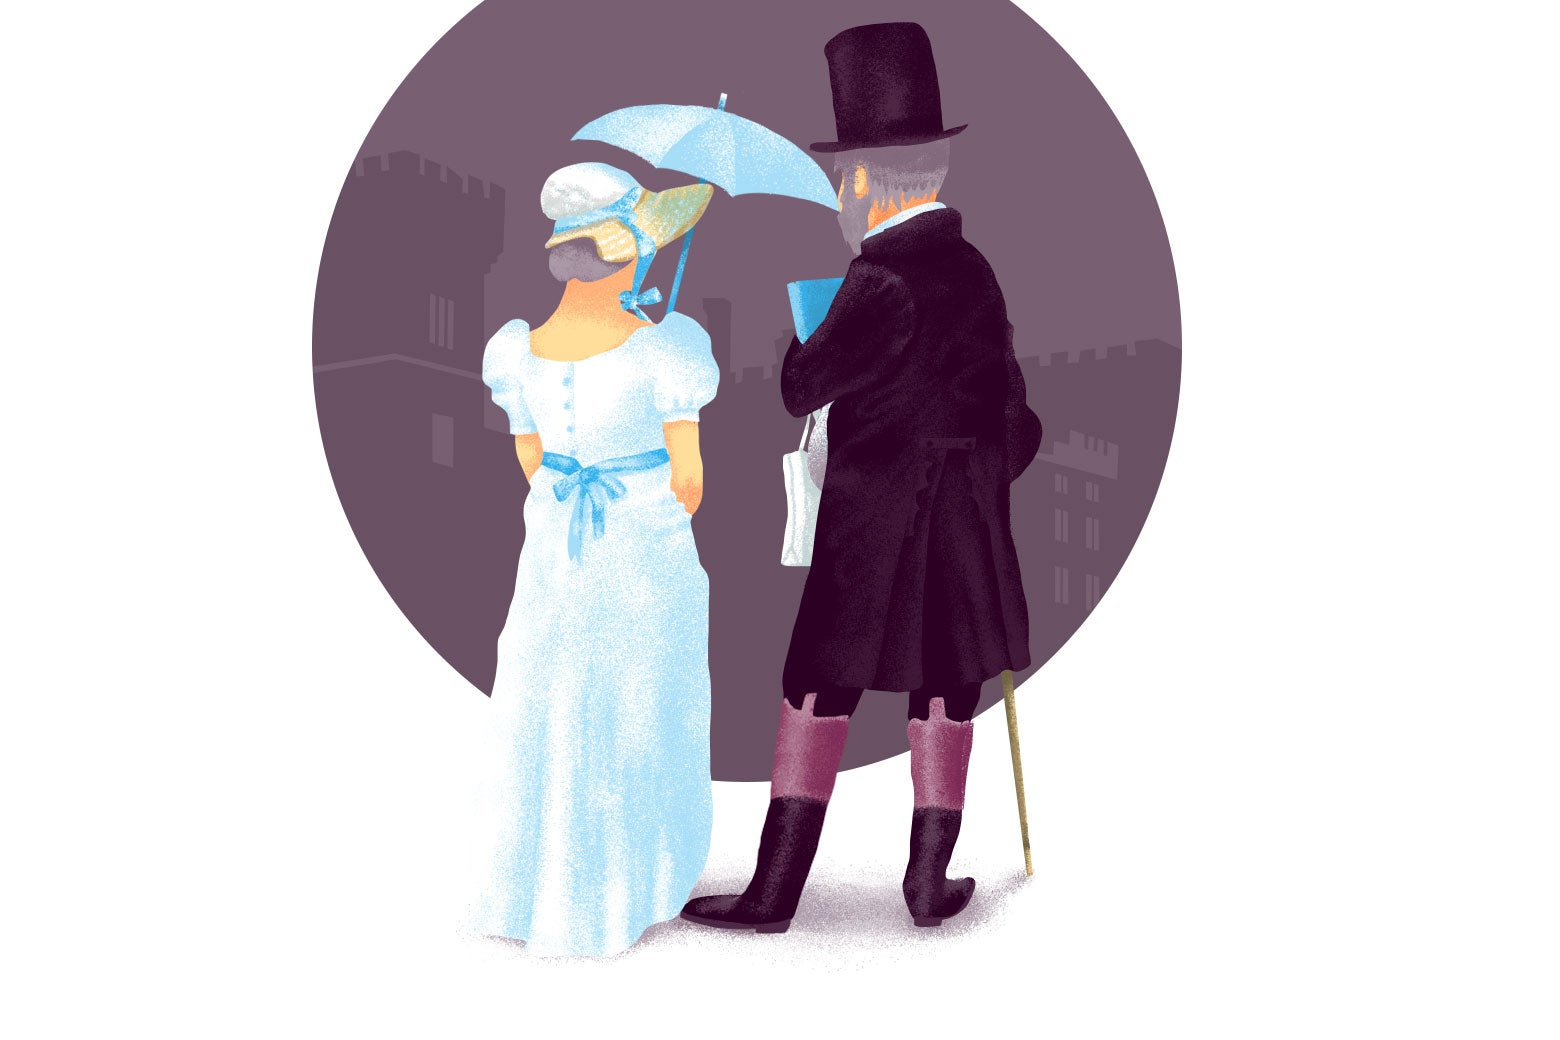 Illustration of an older couple dressed in garb from Jane Austen era.